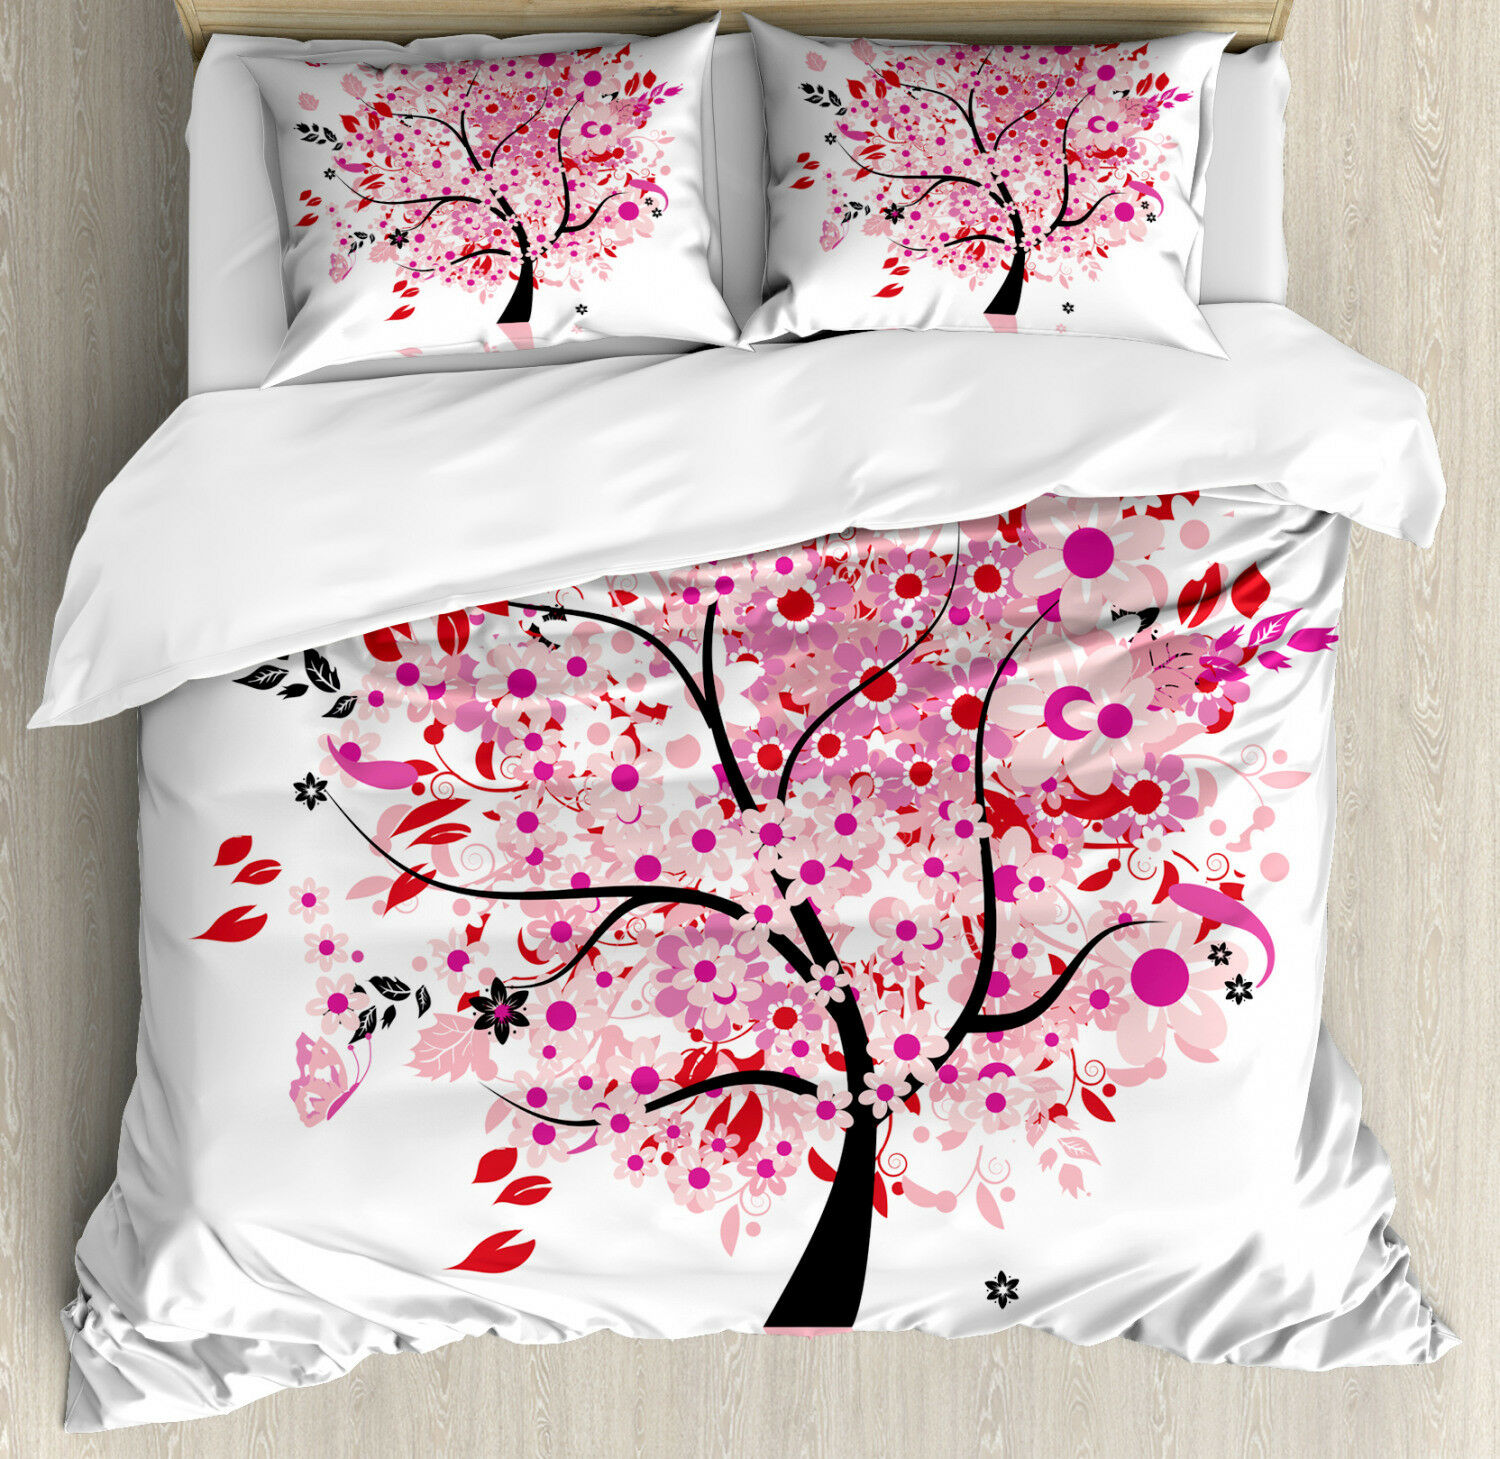 Tree Duvet Cover Set with Pillow Shams Abstract Tree and Flowers Print